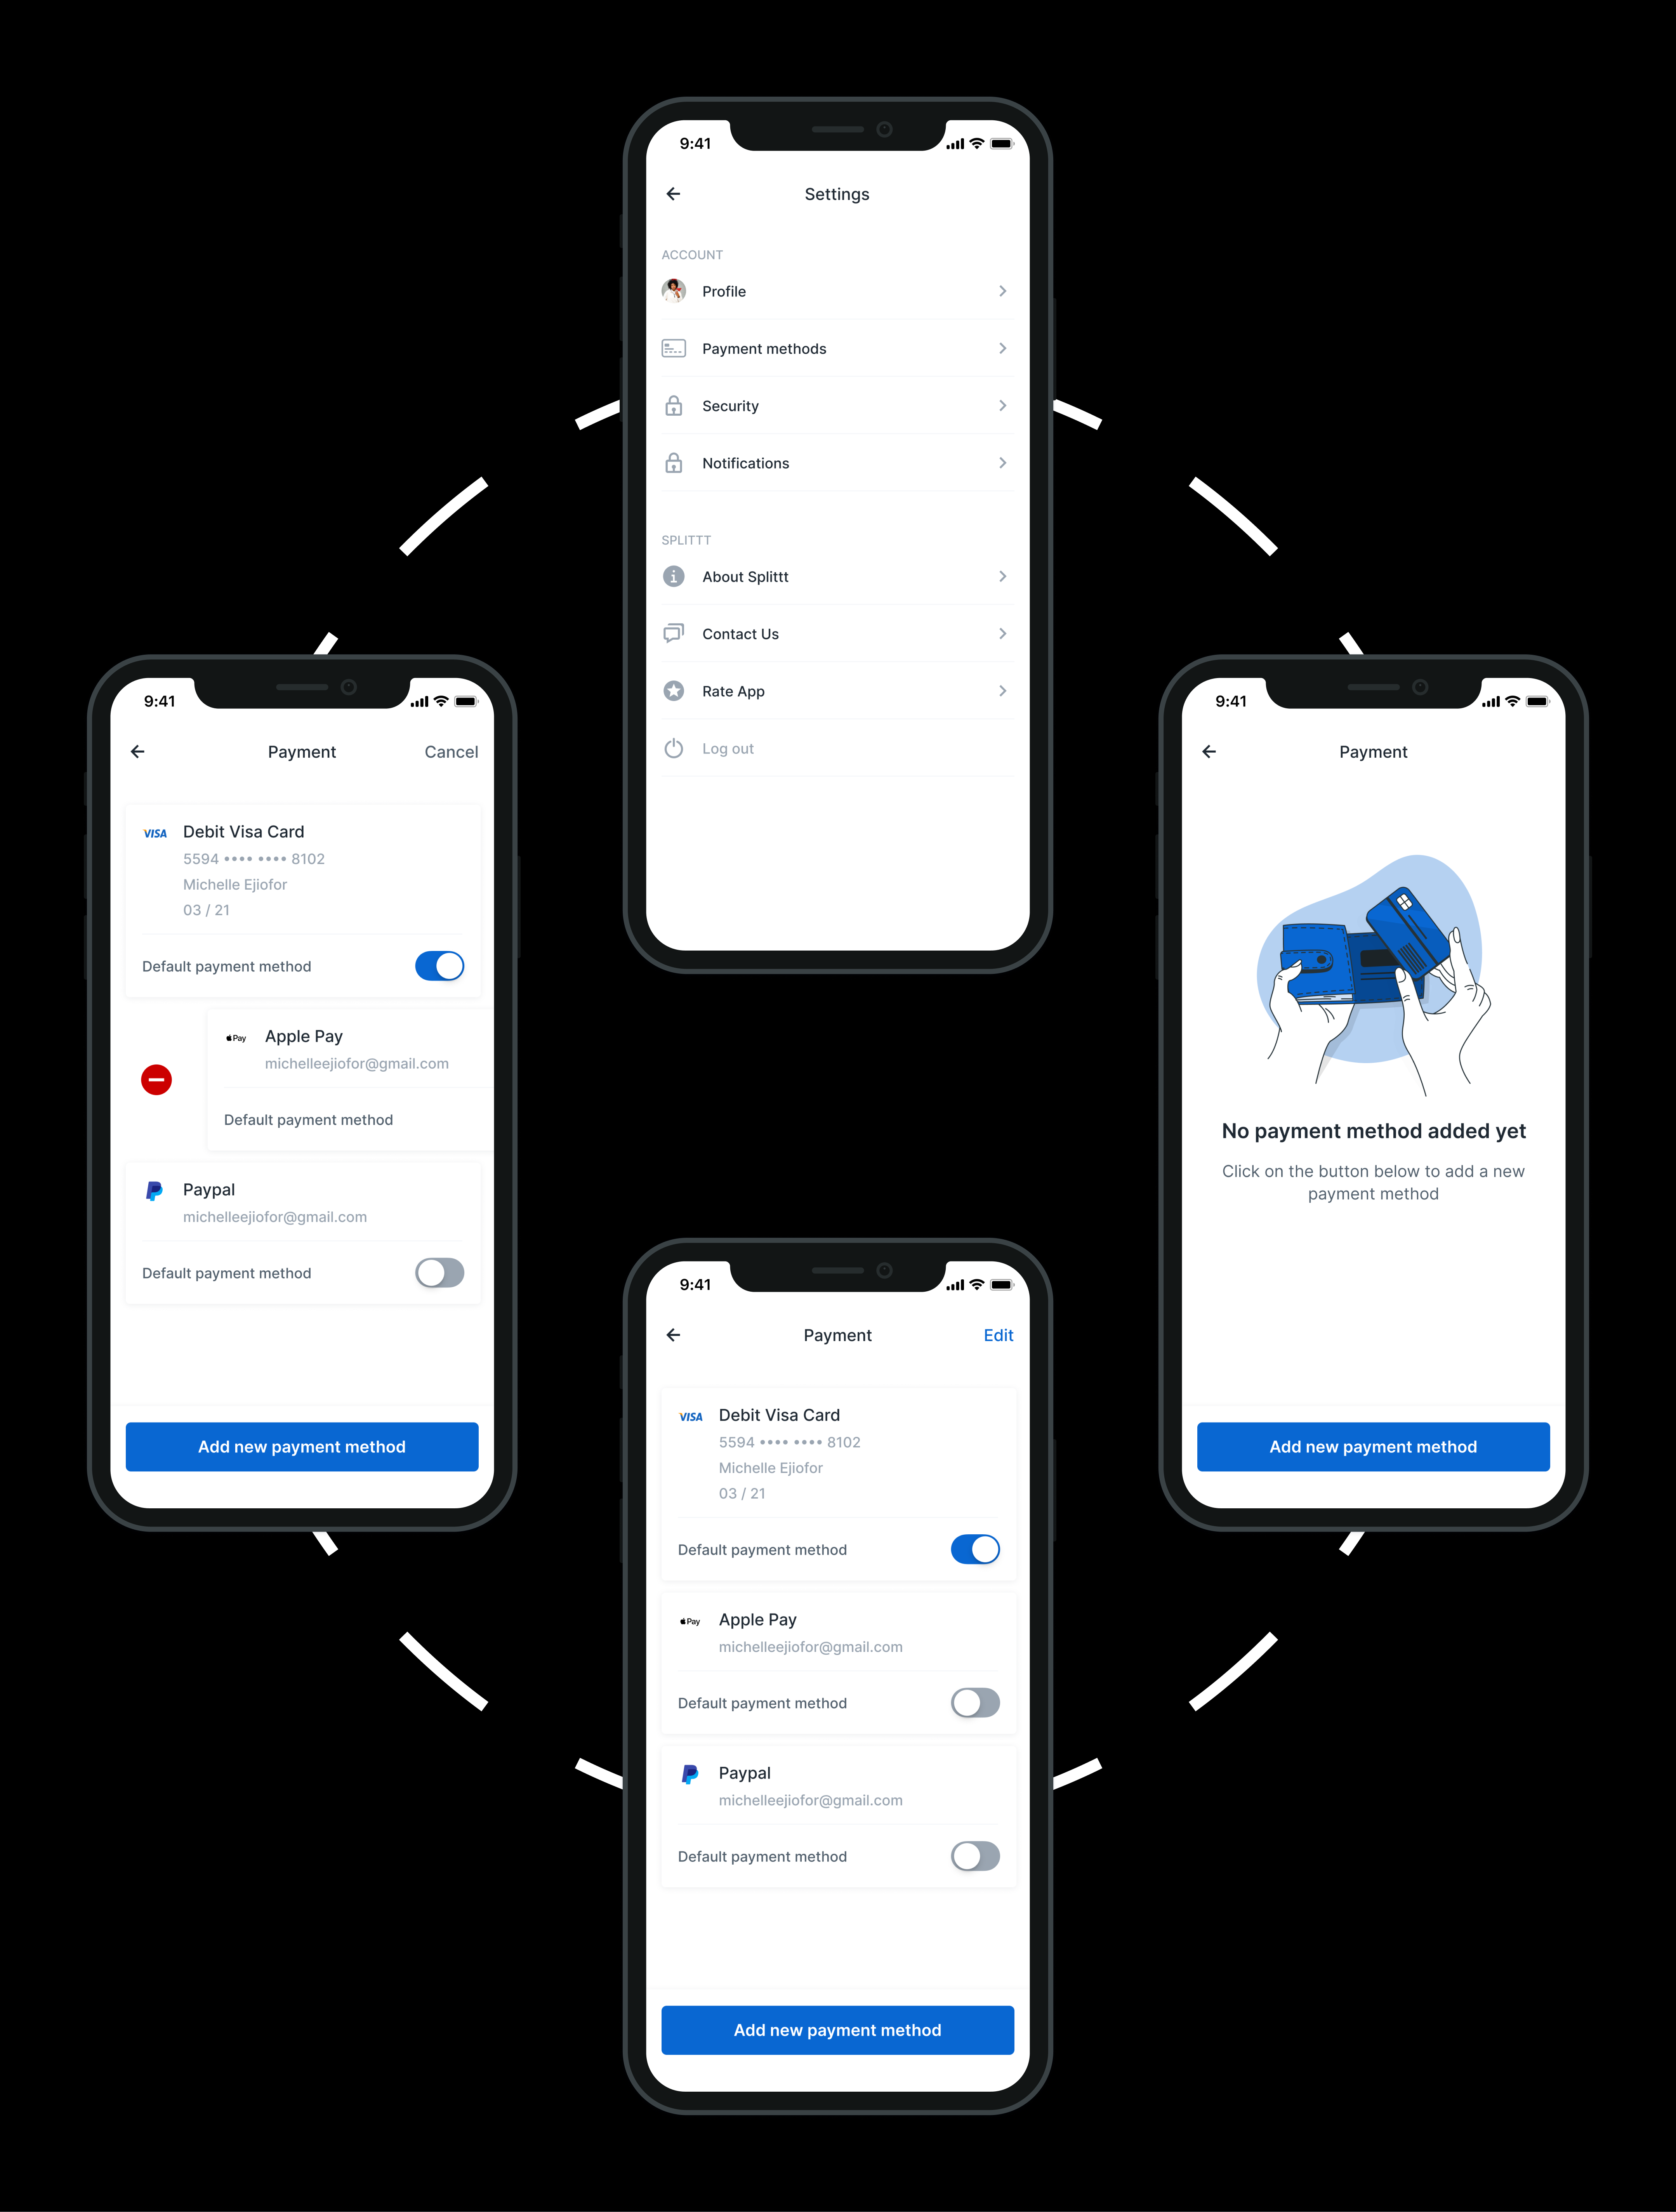 Add payment method flow